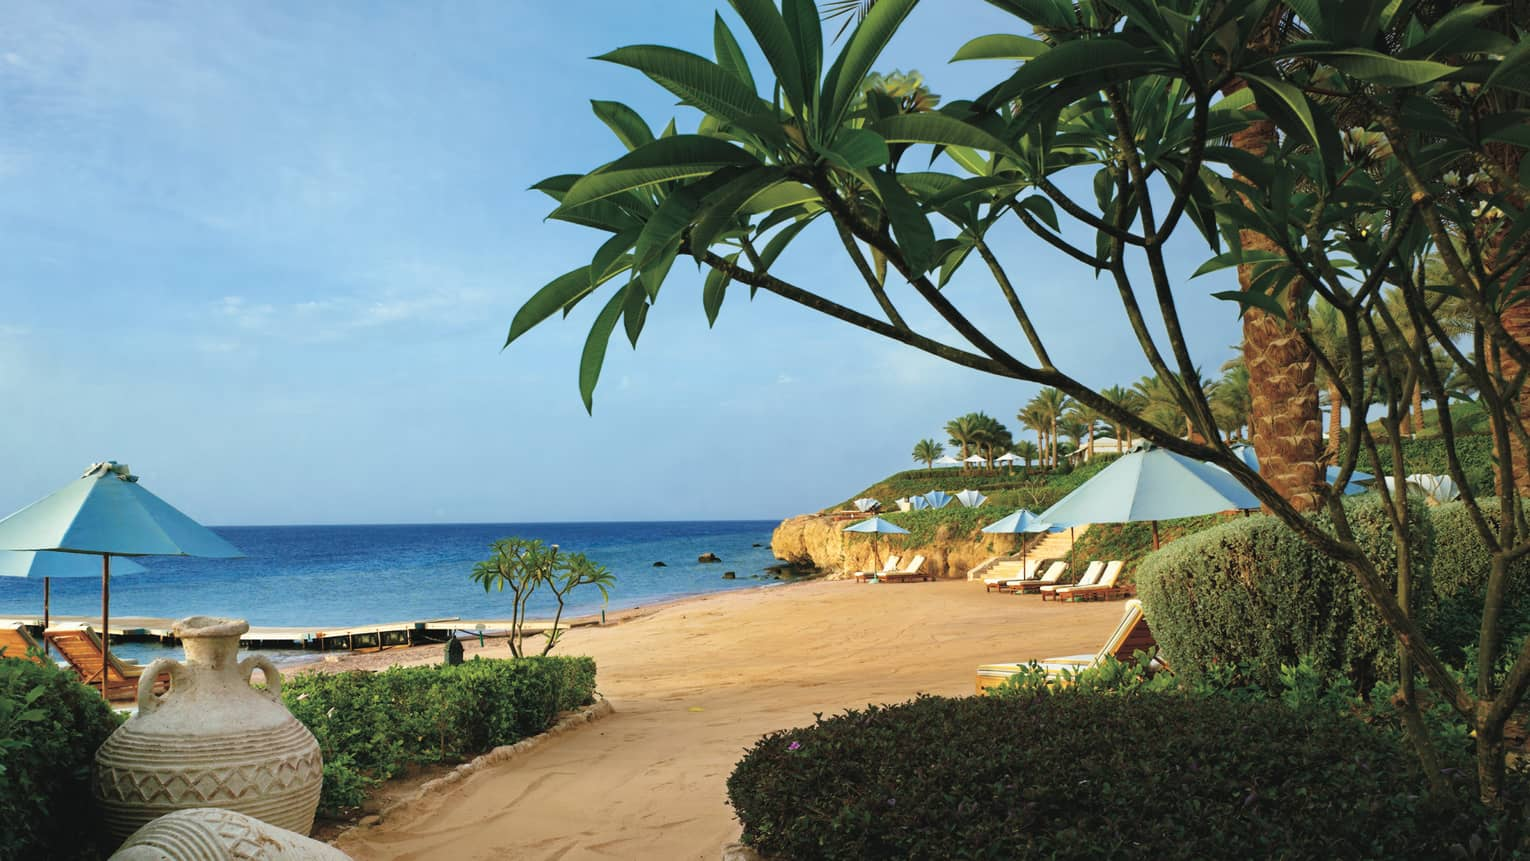 Palm trees, tropical plants hang over golden sand beach by sea